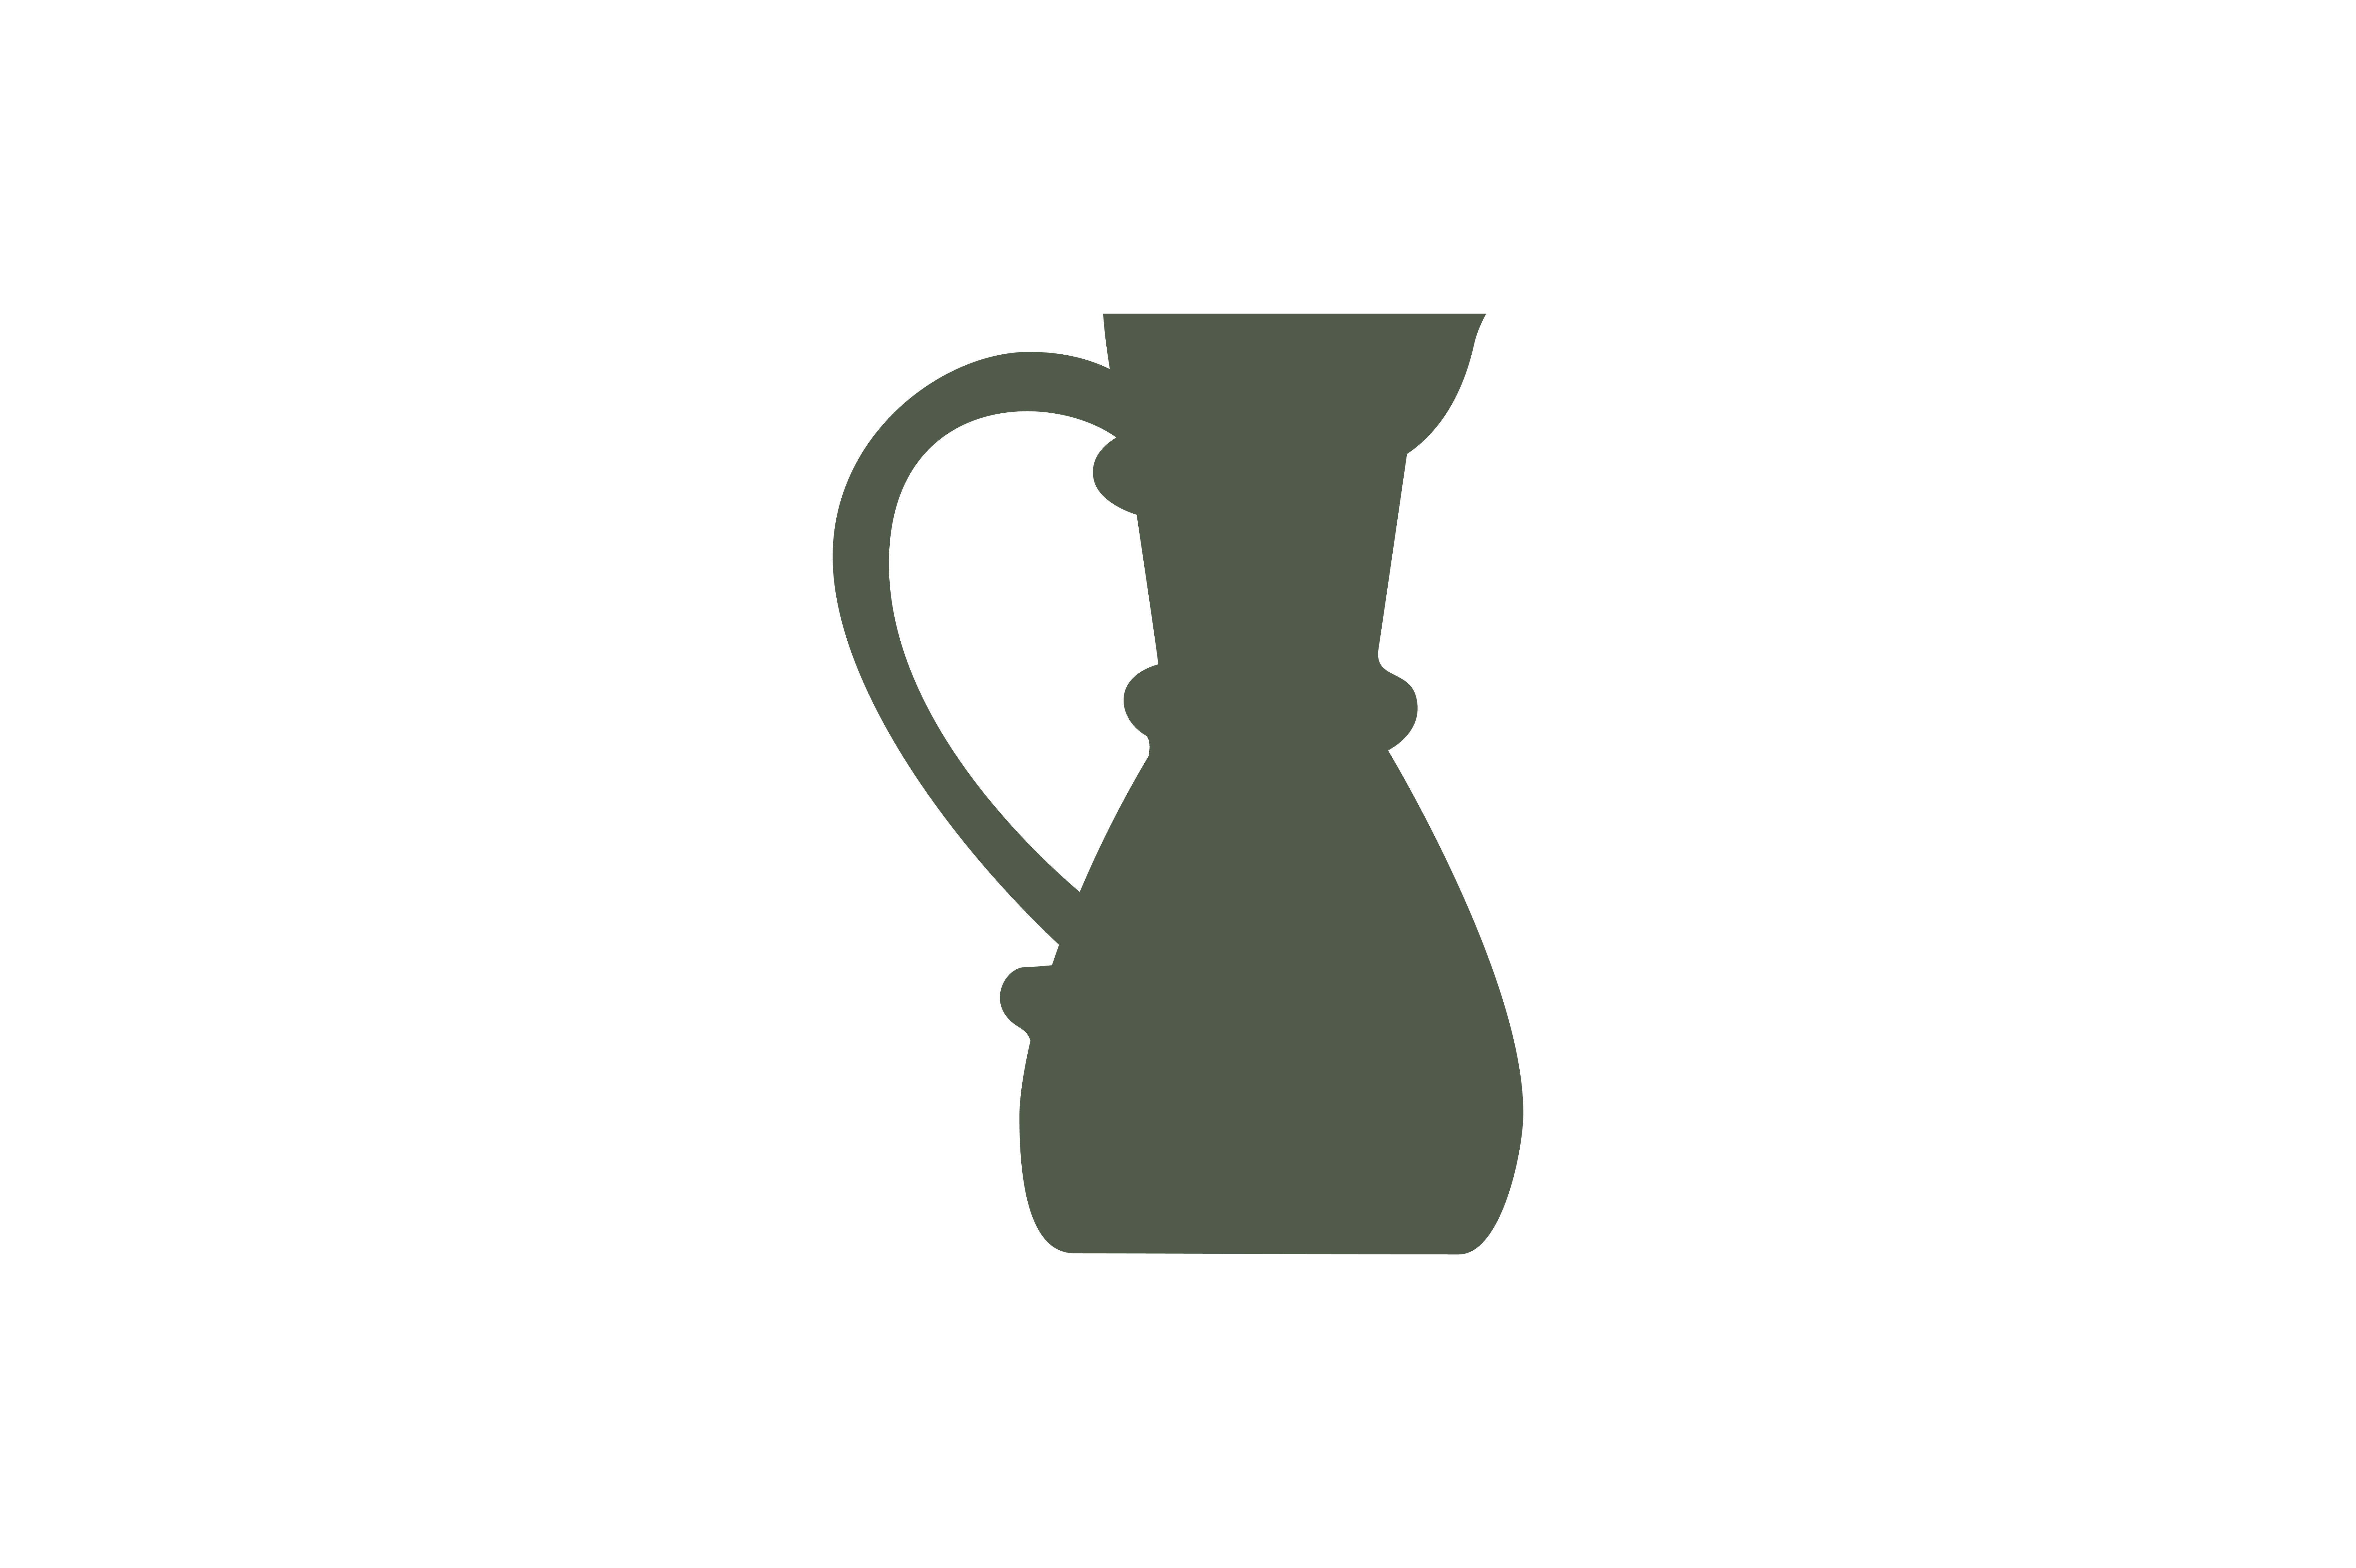 Download Free Cup Icon Graphic By Zafreeloicon Creative Fabrica for Cricut Explore, Silhouette and other cutting machines.